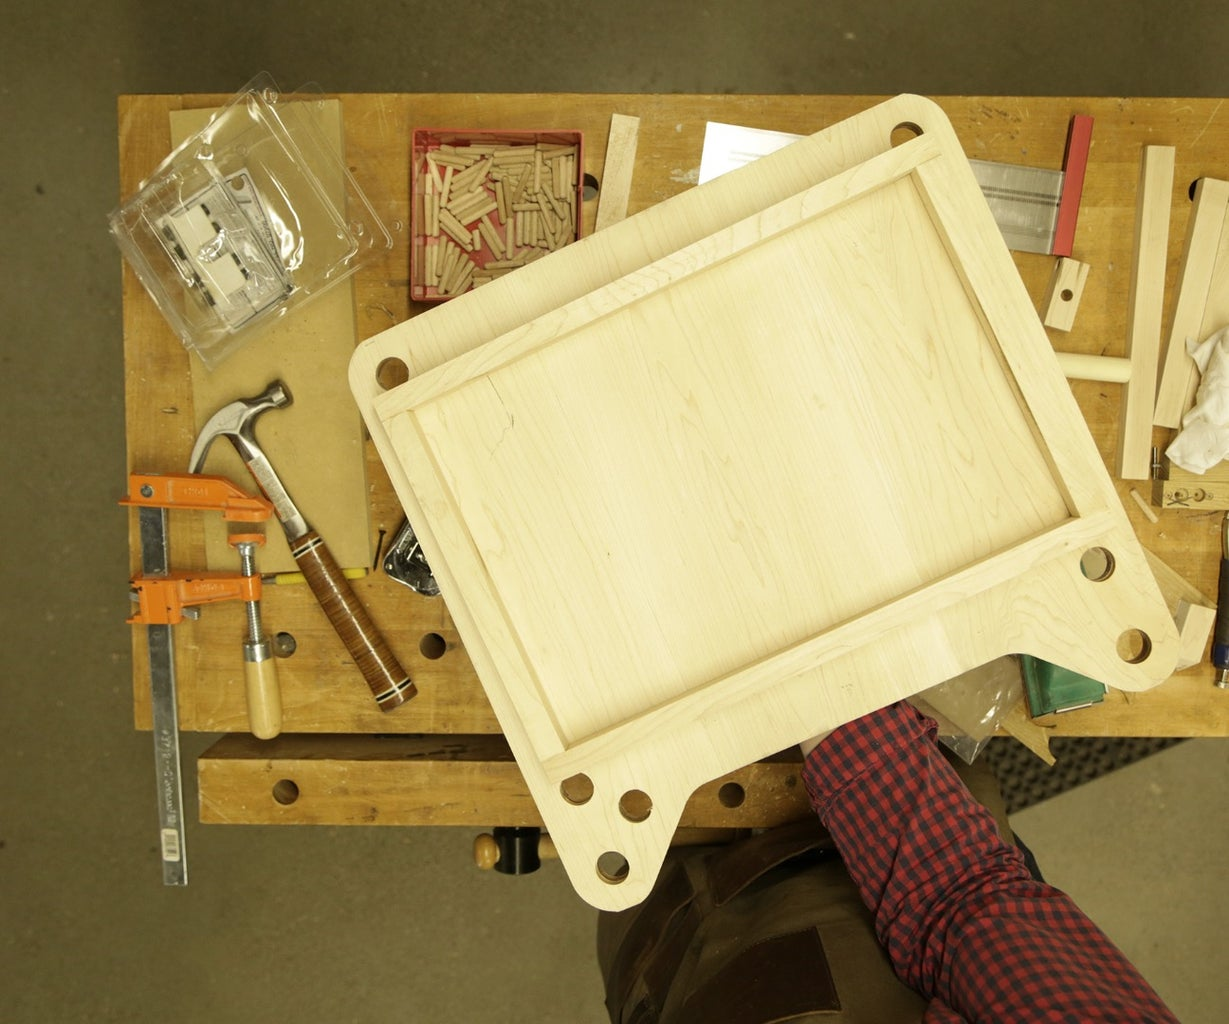 Assemble and Attach the Tray